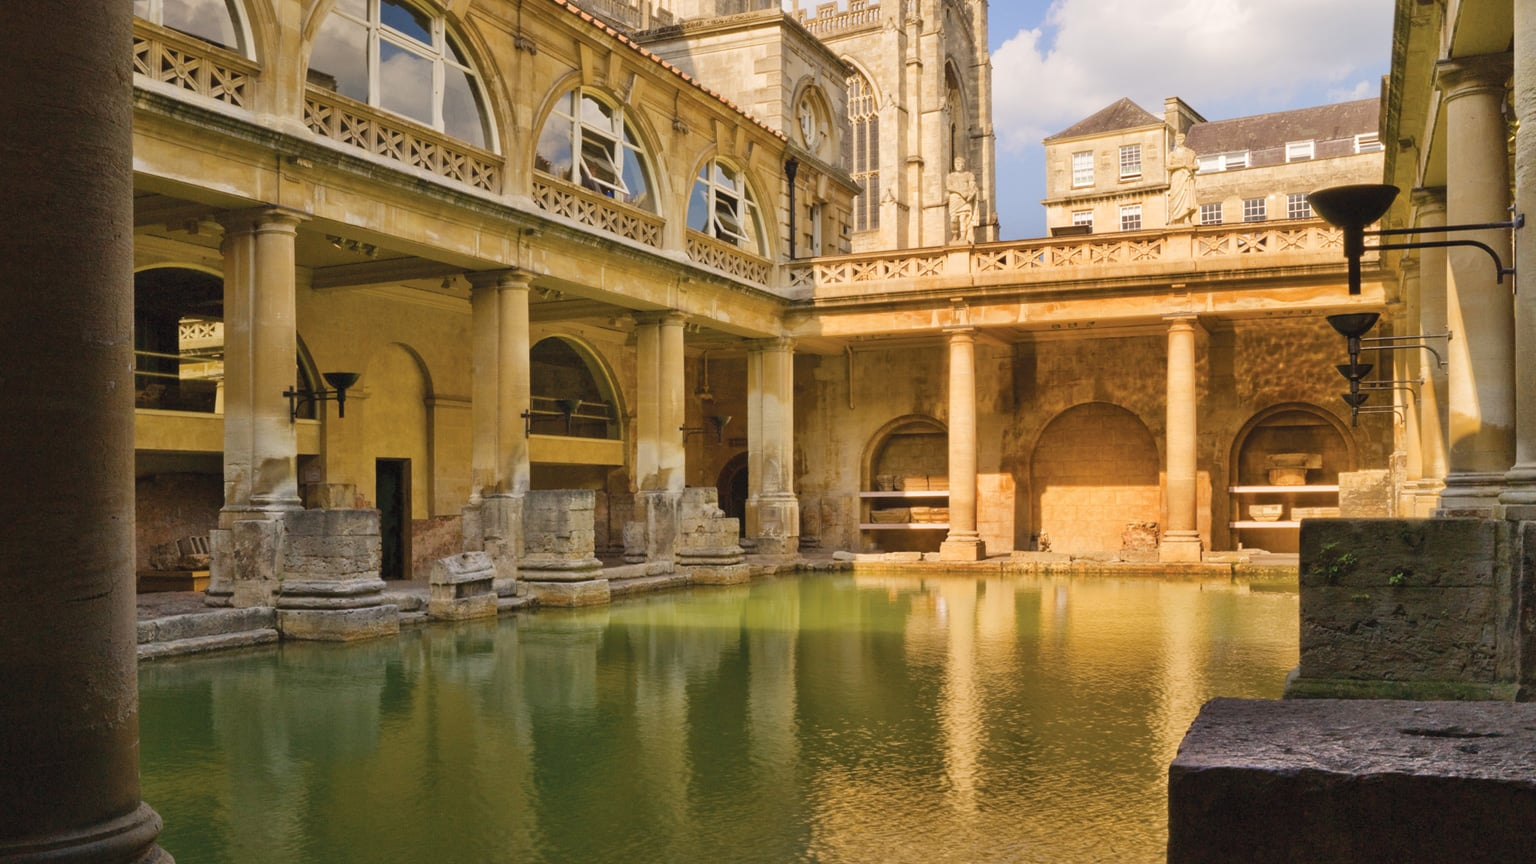 2. Roman Baths in Somerset - Reduced price entry with National Art Pass